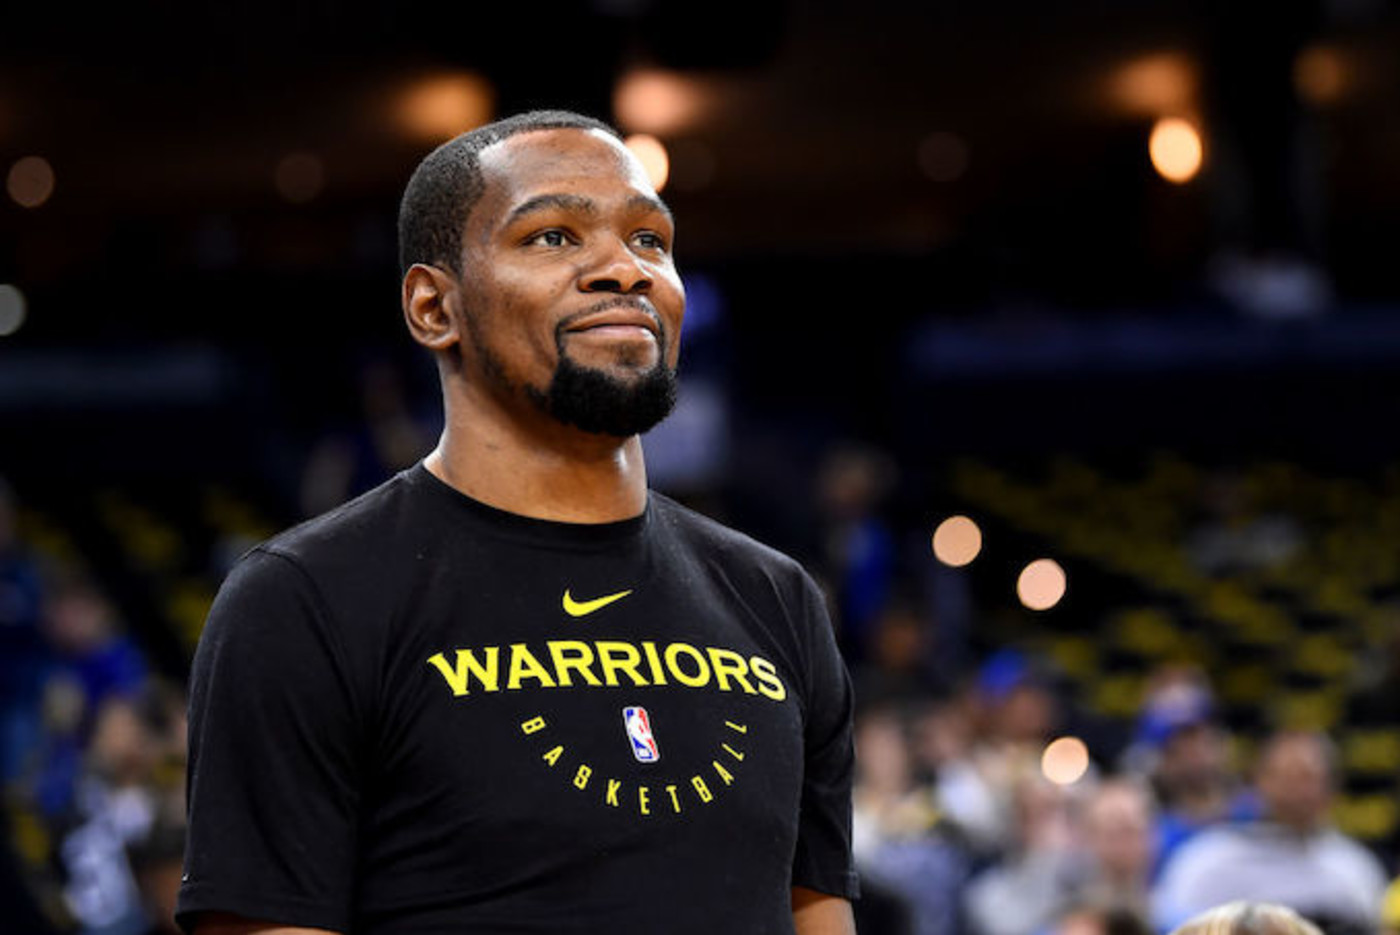 This is a picture of KD.